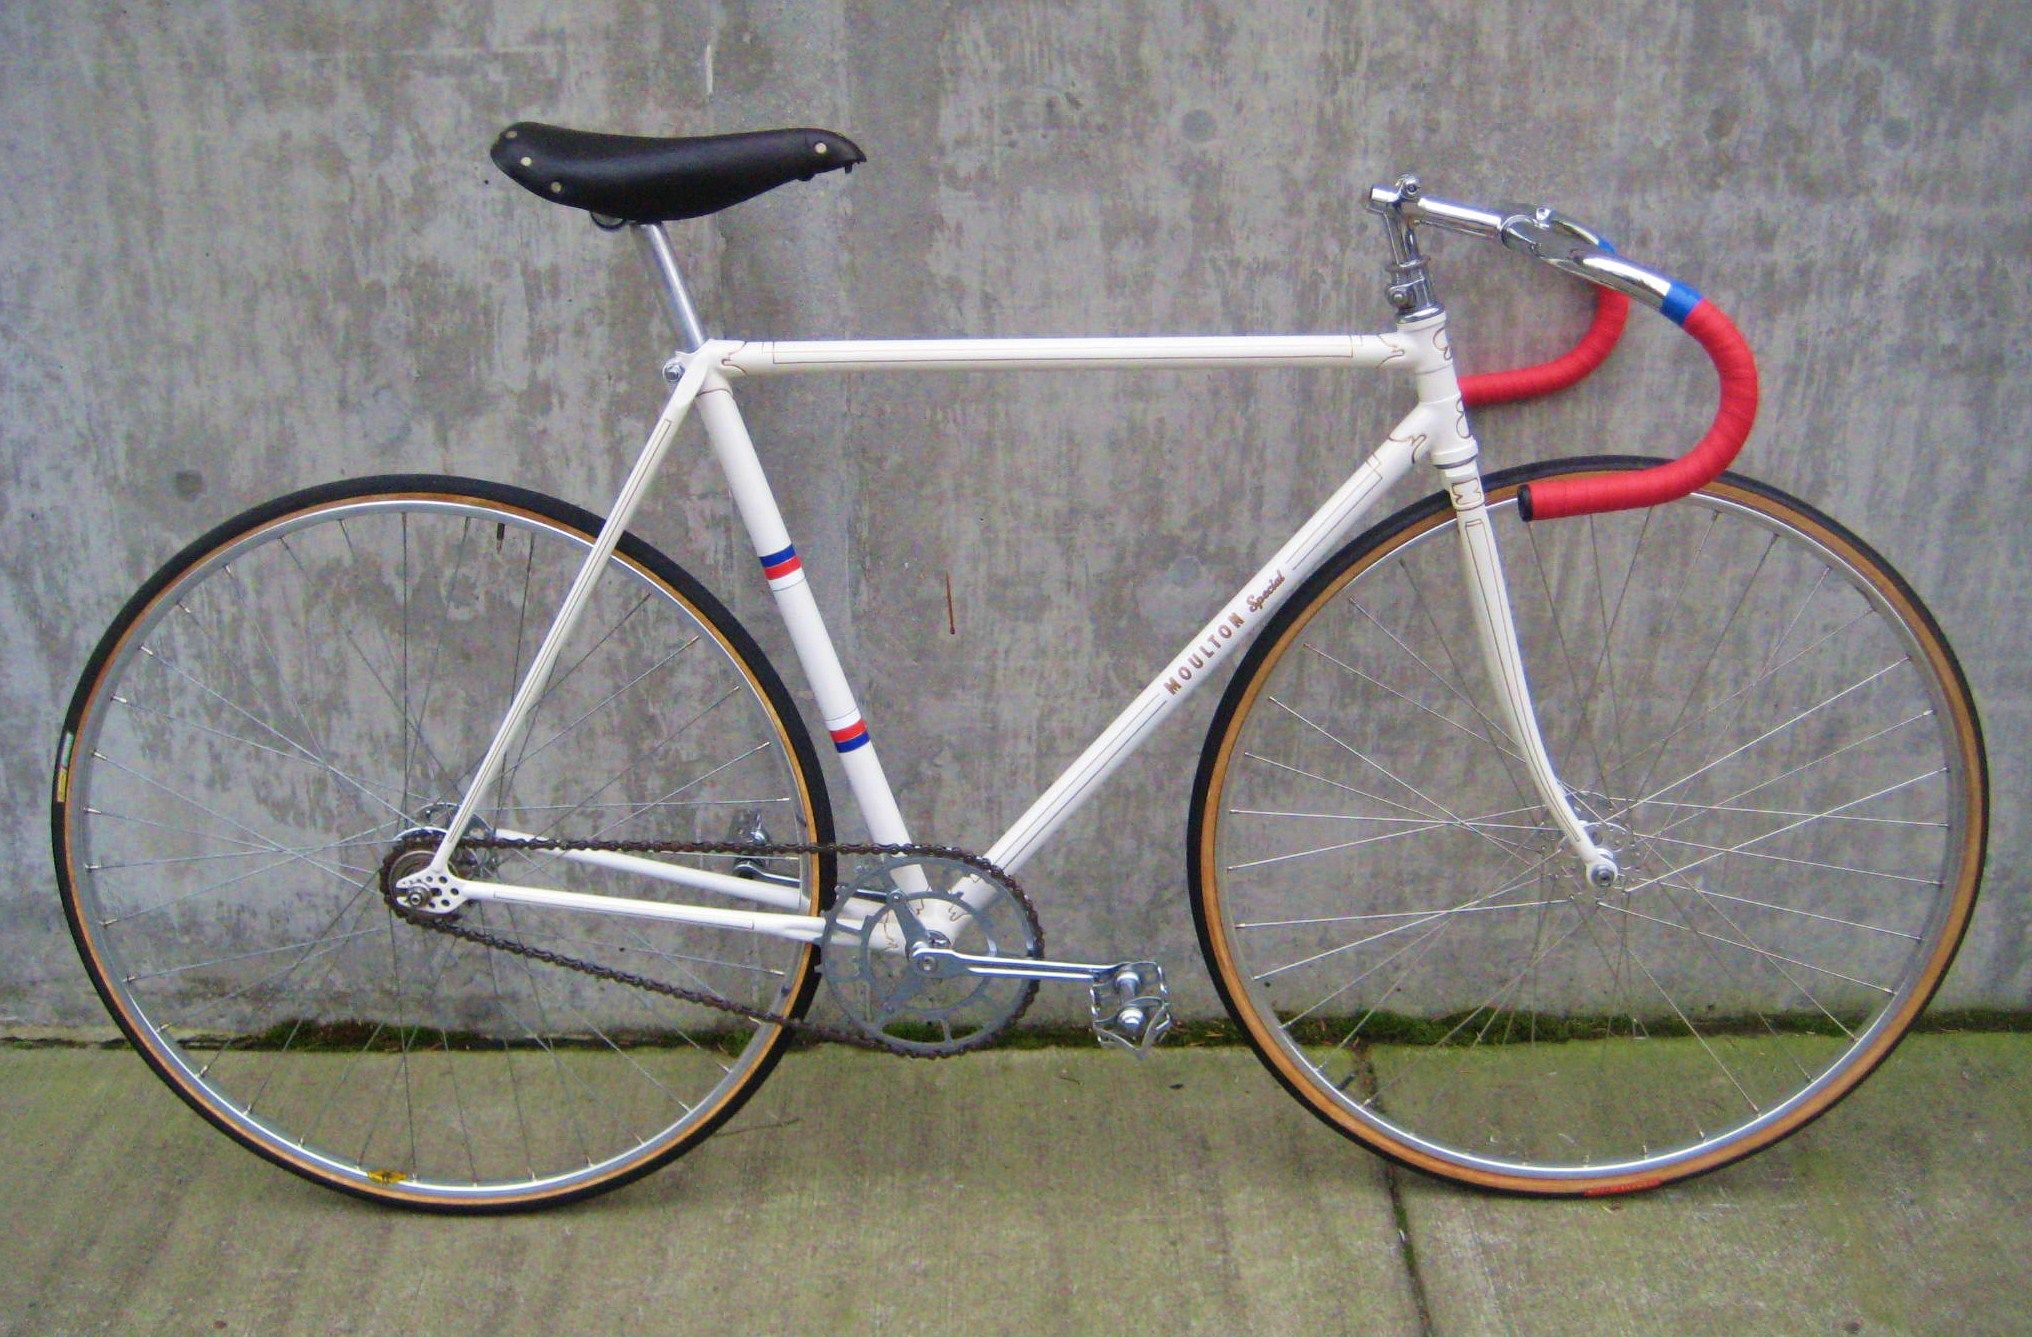 Vintage Mike Moulton Track Bike at Classic Cycle | Classic ...